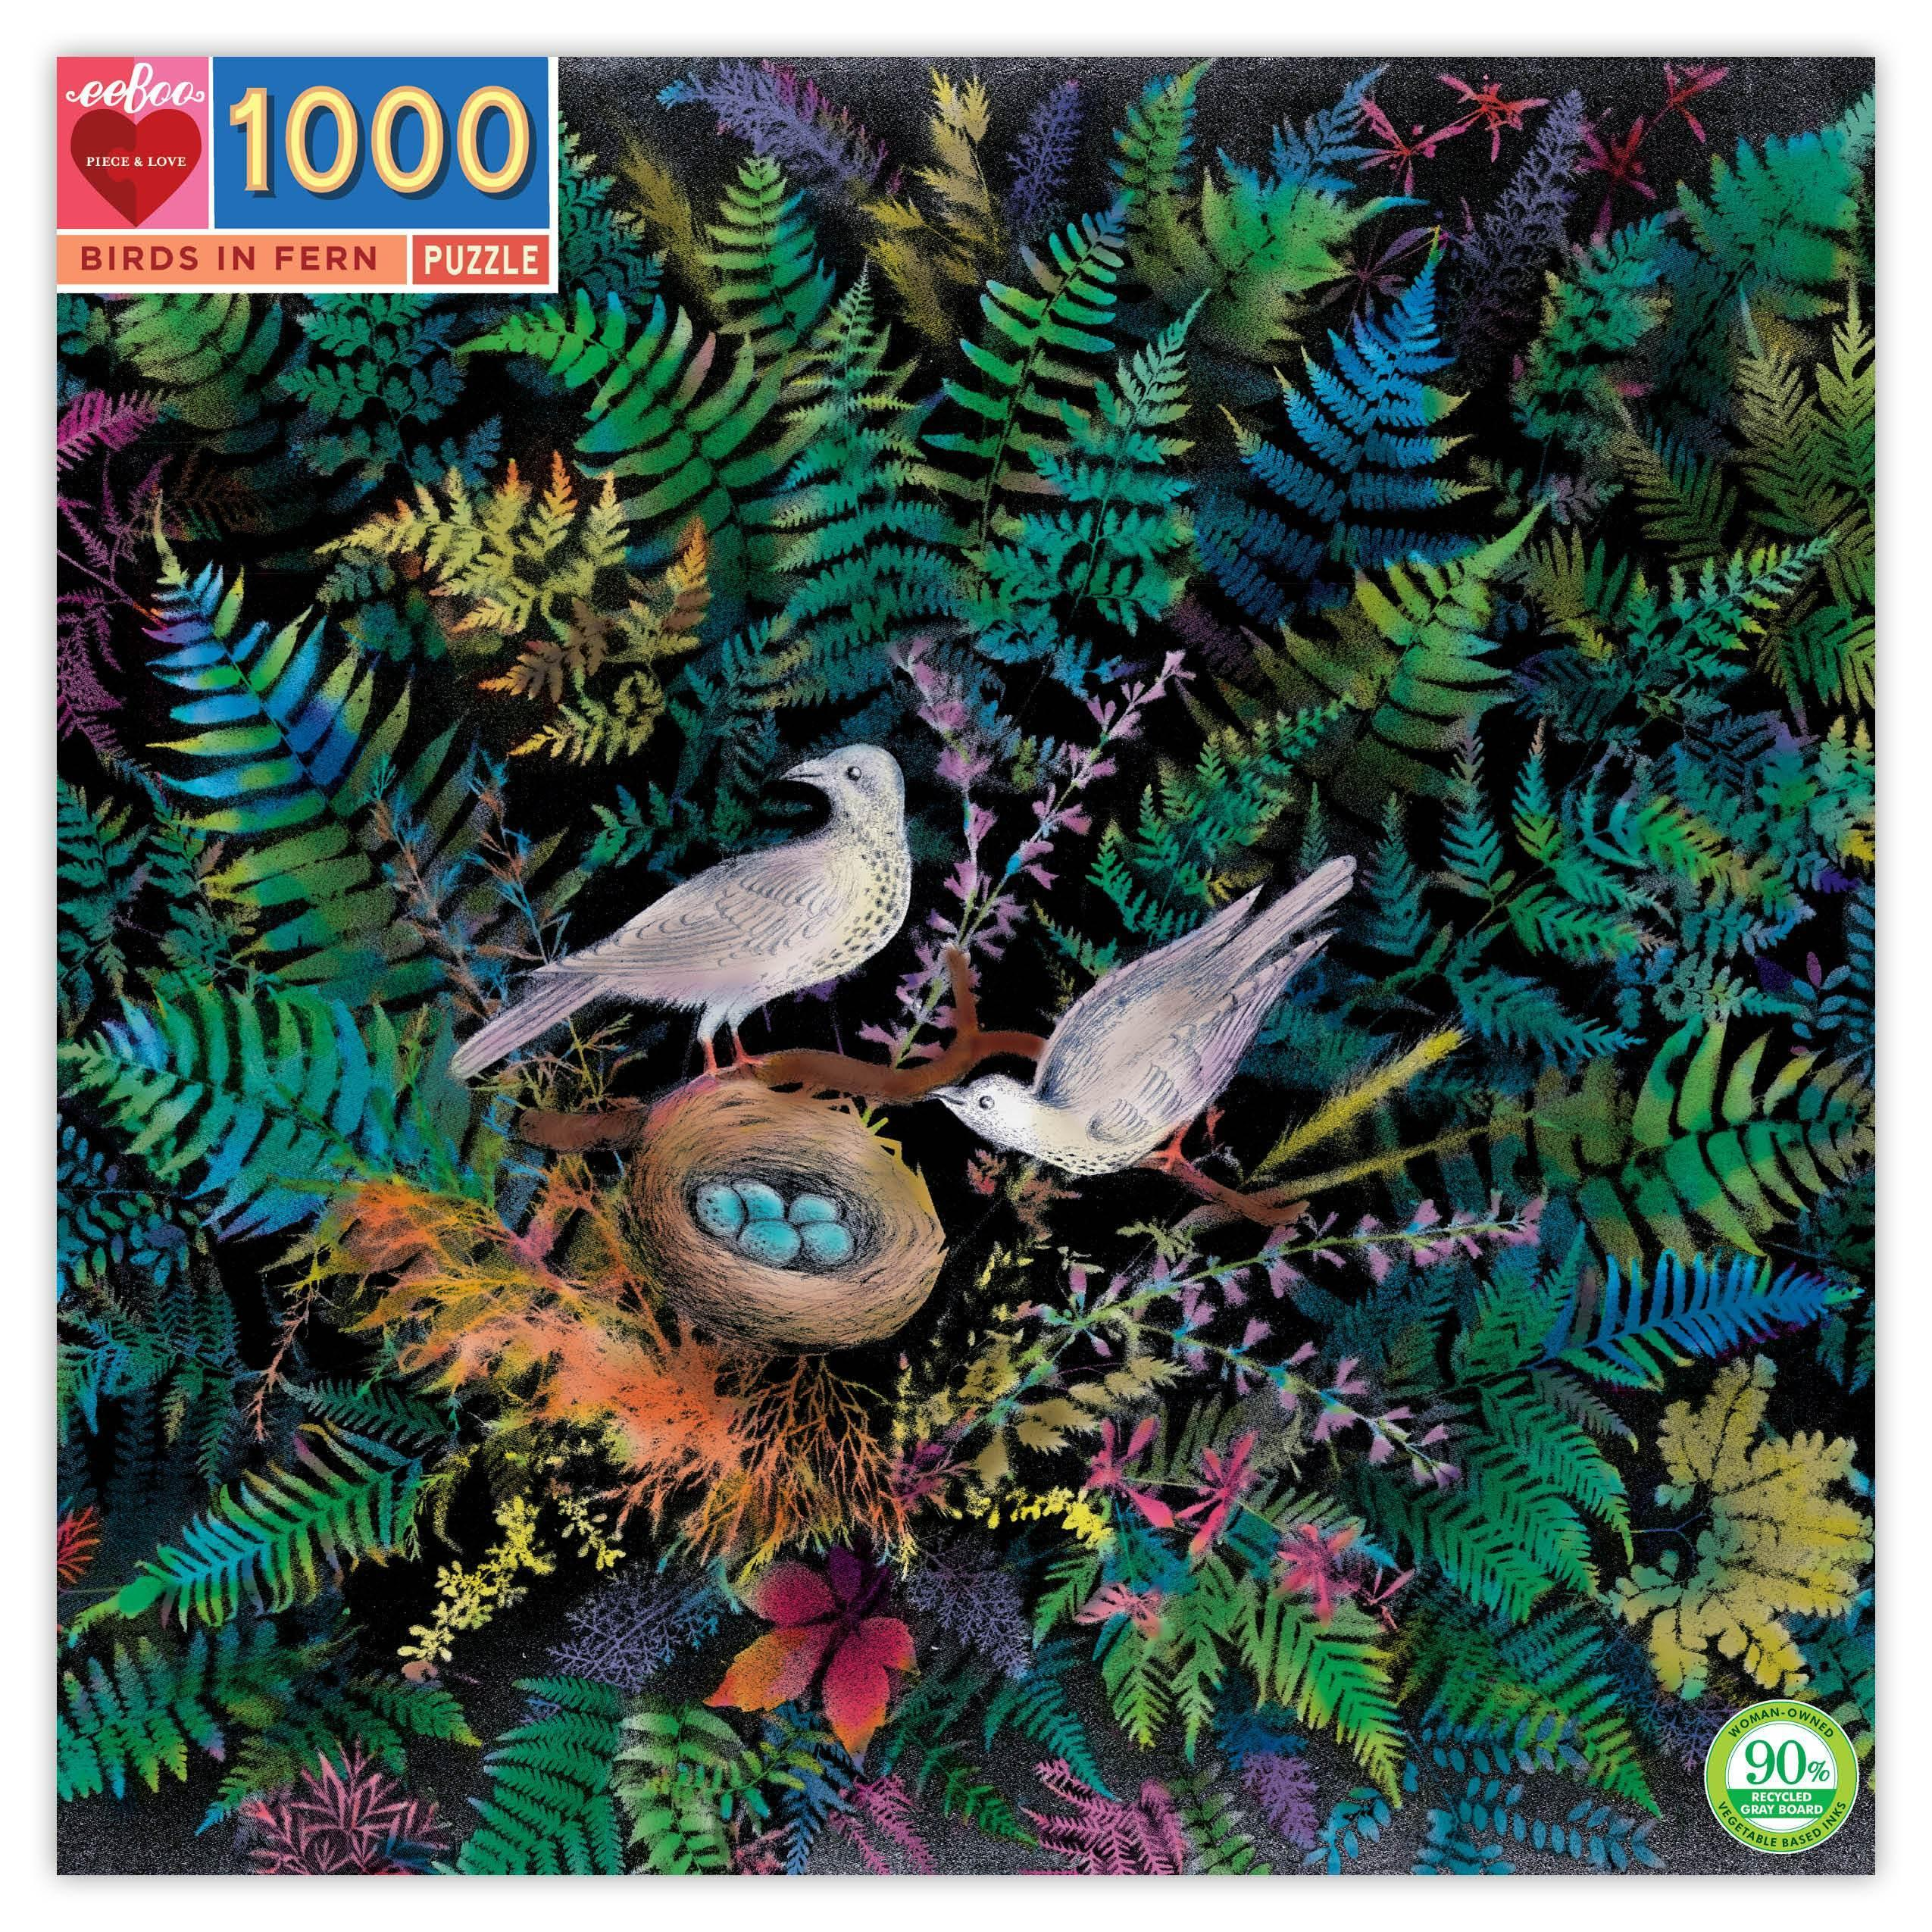 Birds in Fern Jigsaw Puzzle (1000 Piece)